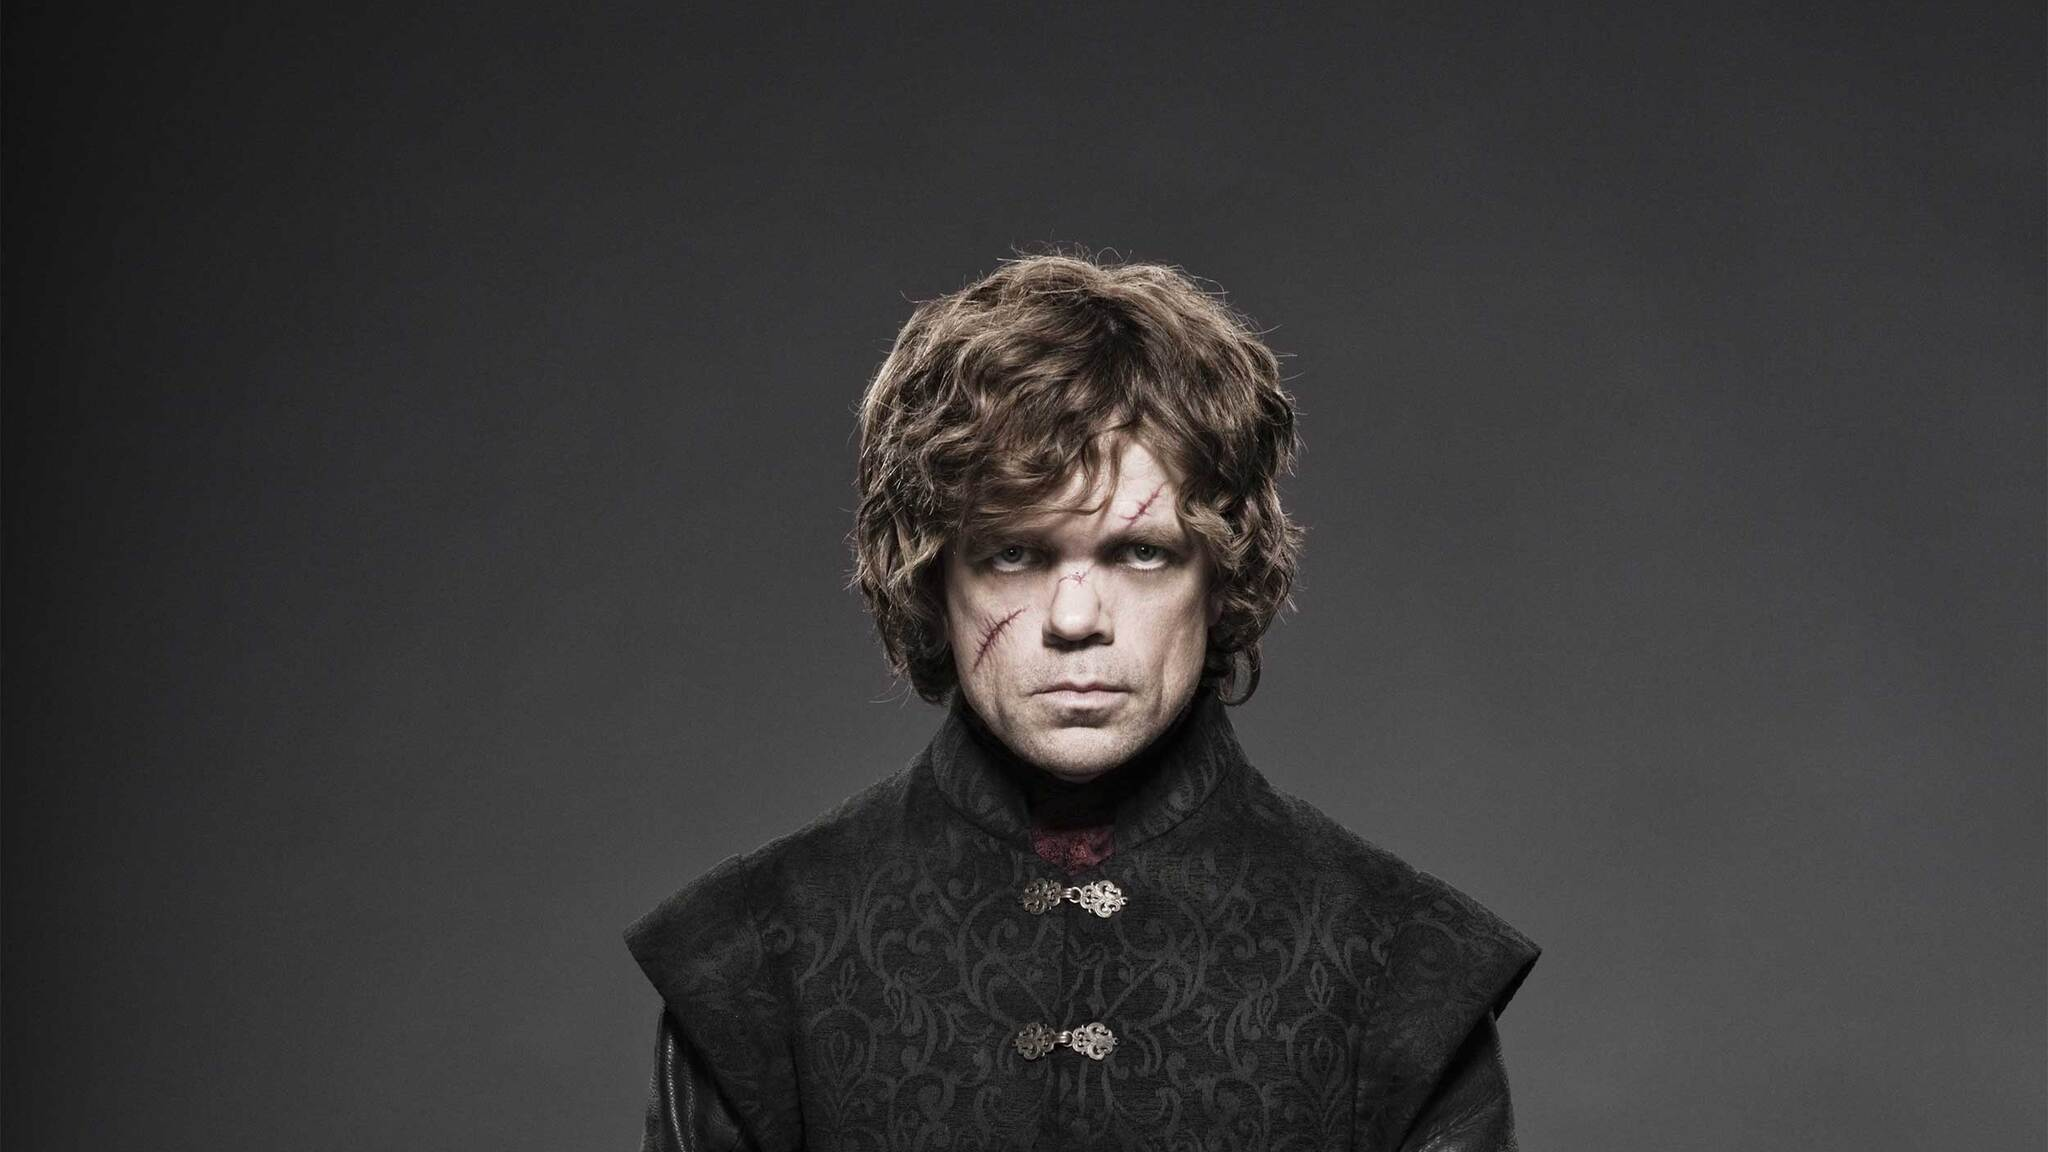 2048x1152 Tyrion Lannister Game Of Thrones 2048x1152